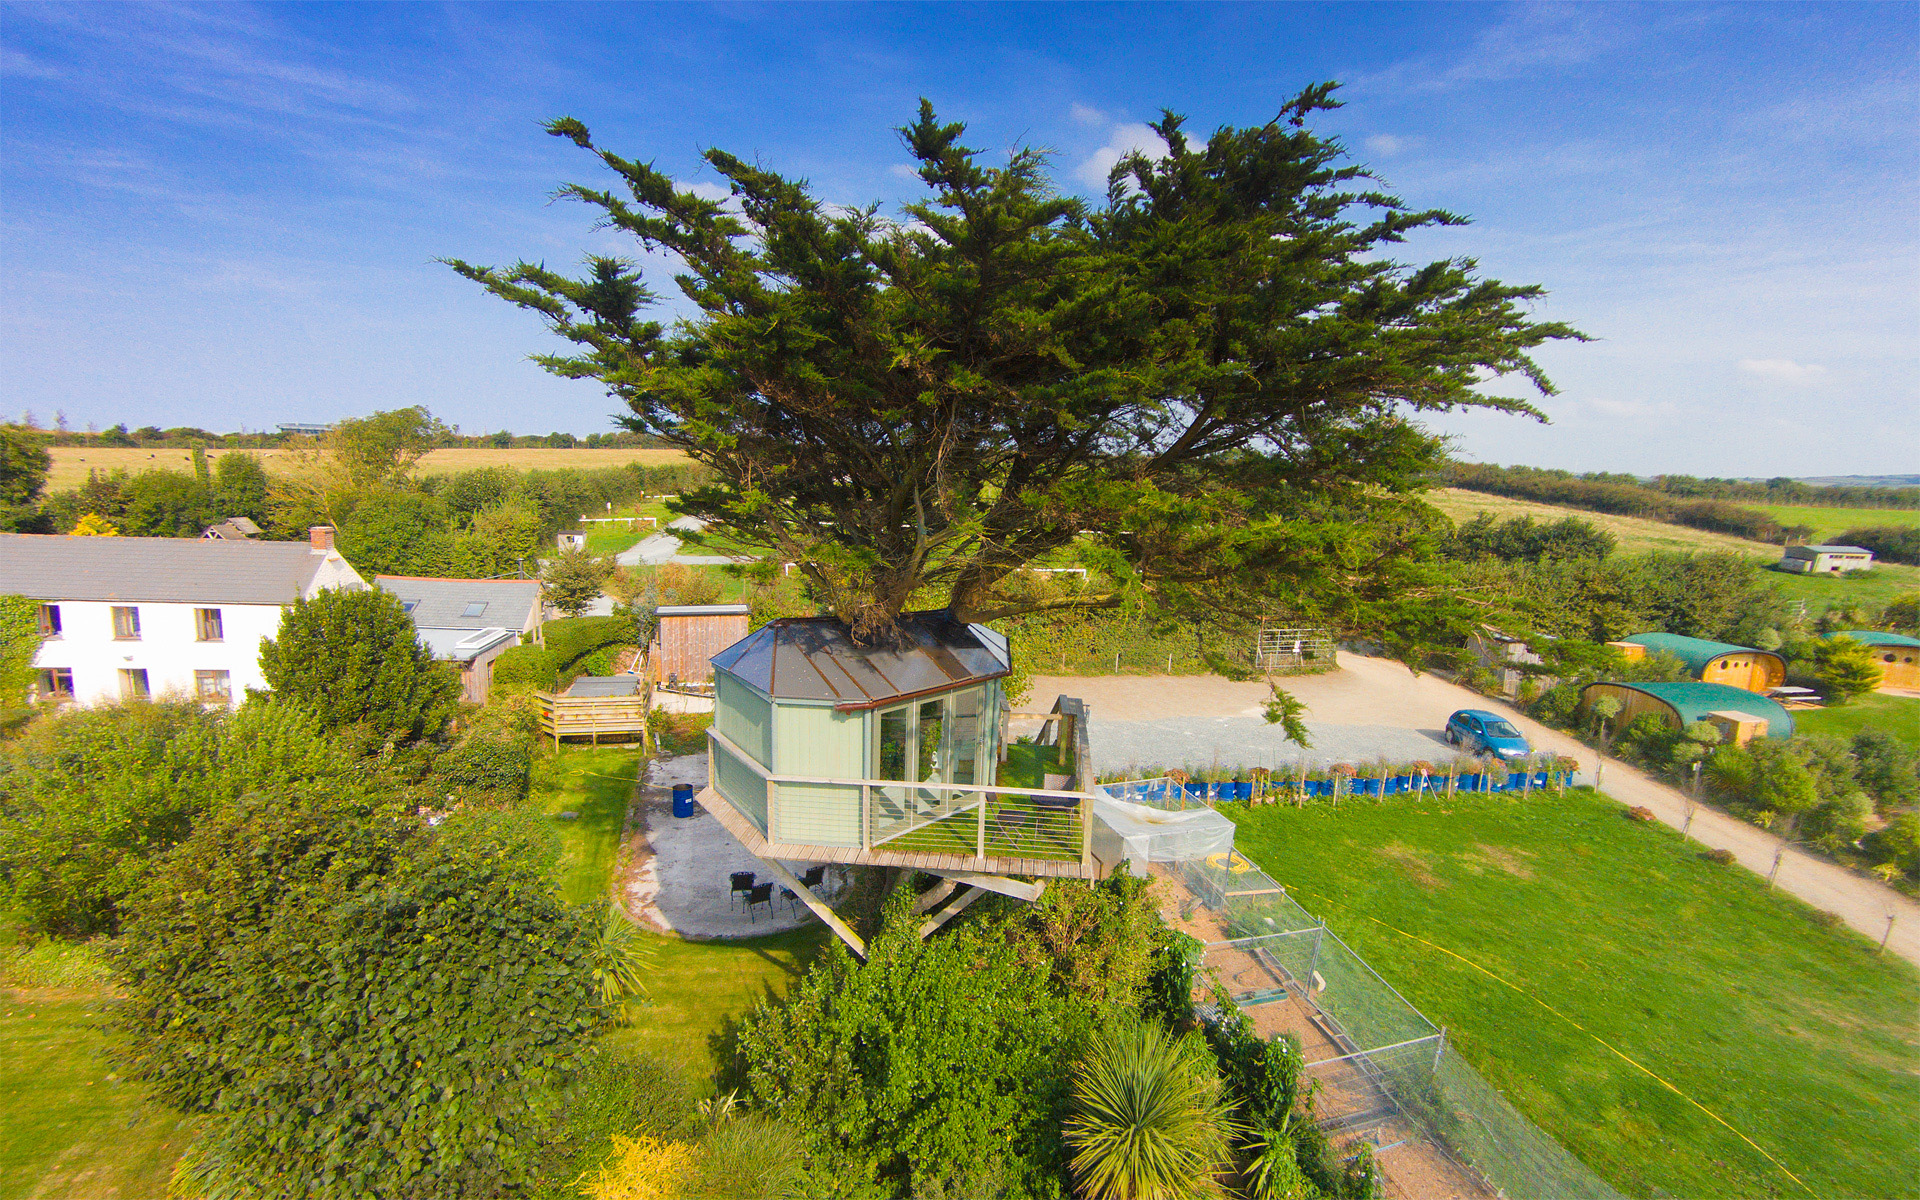 tree house pictures. atlantic treehouse. dji00158 tree house pictures